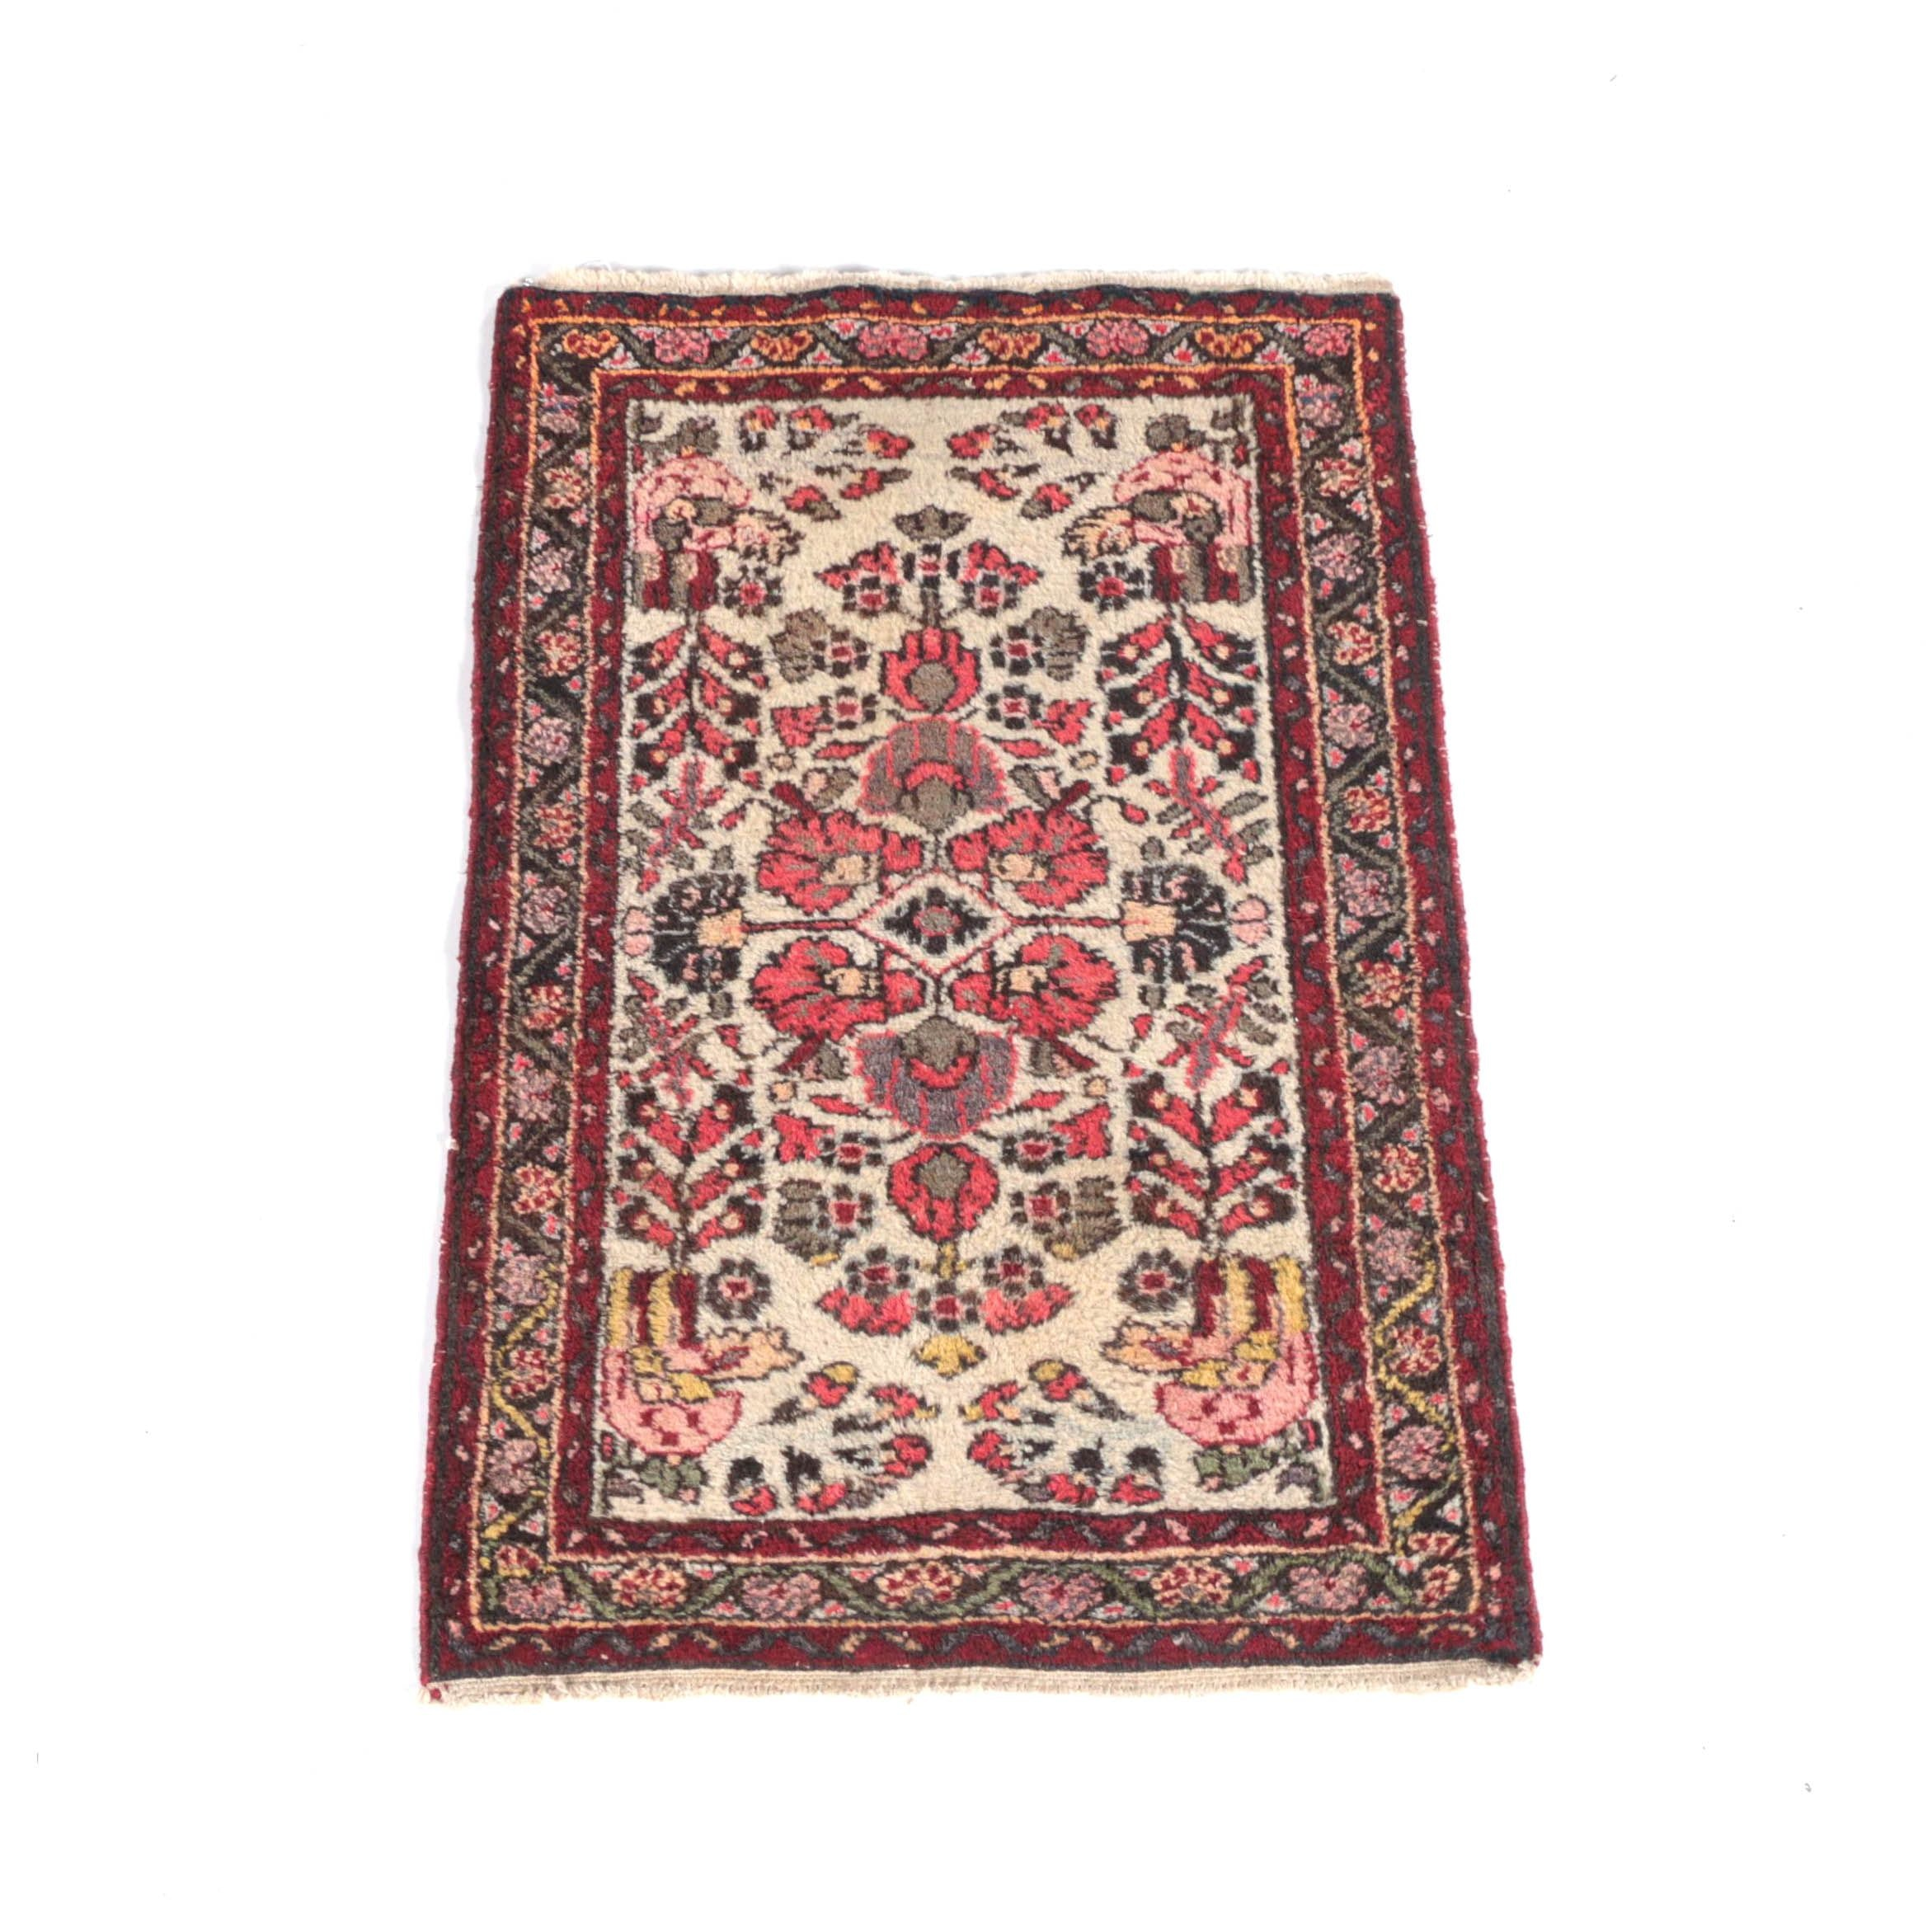 Vintage Hand-Knotted Persian Wool Accent Rug